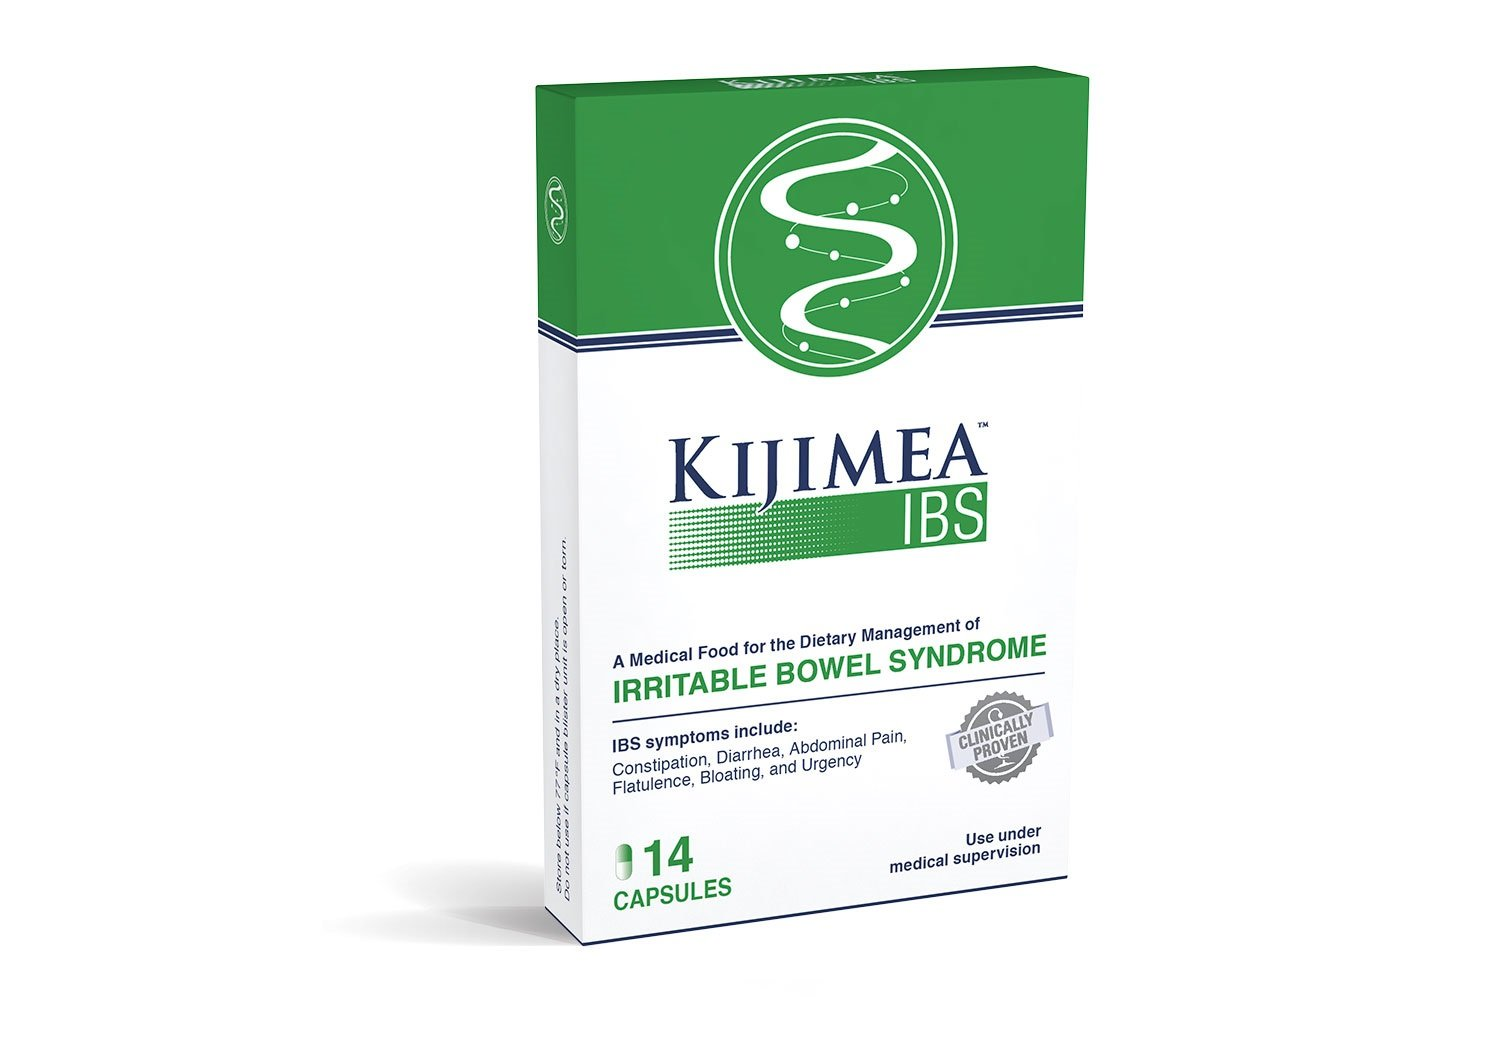 Kijimea™ IBS, Medical Food for the Dietary Management of Irritable Bowel Syndrome, 14 Capsules